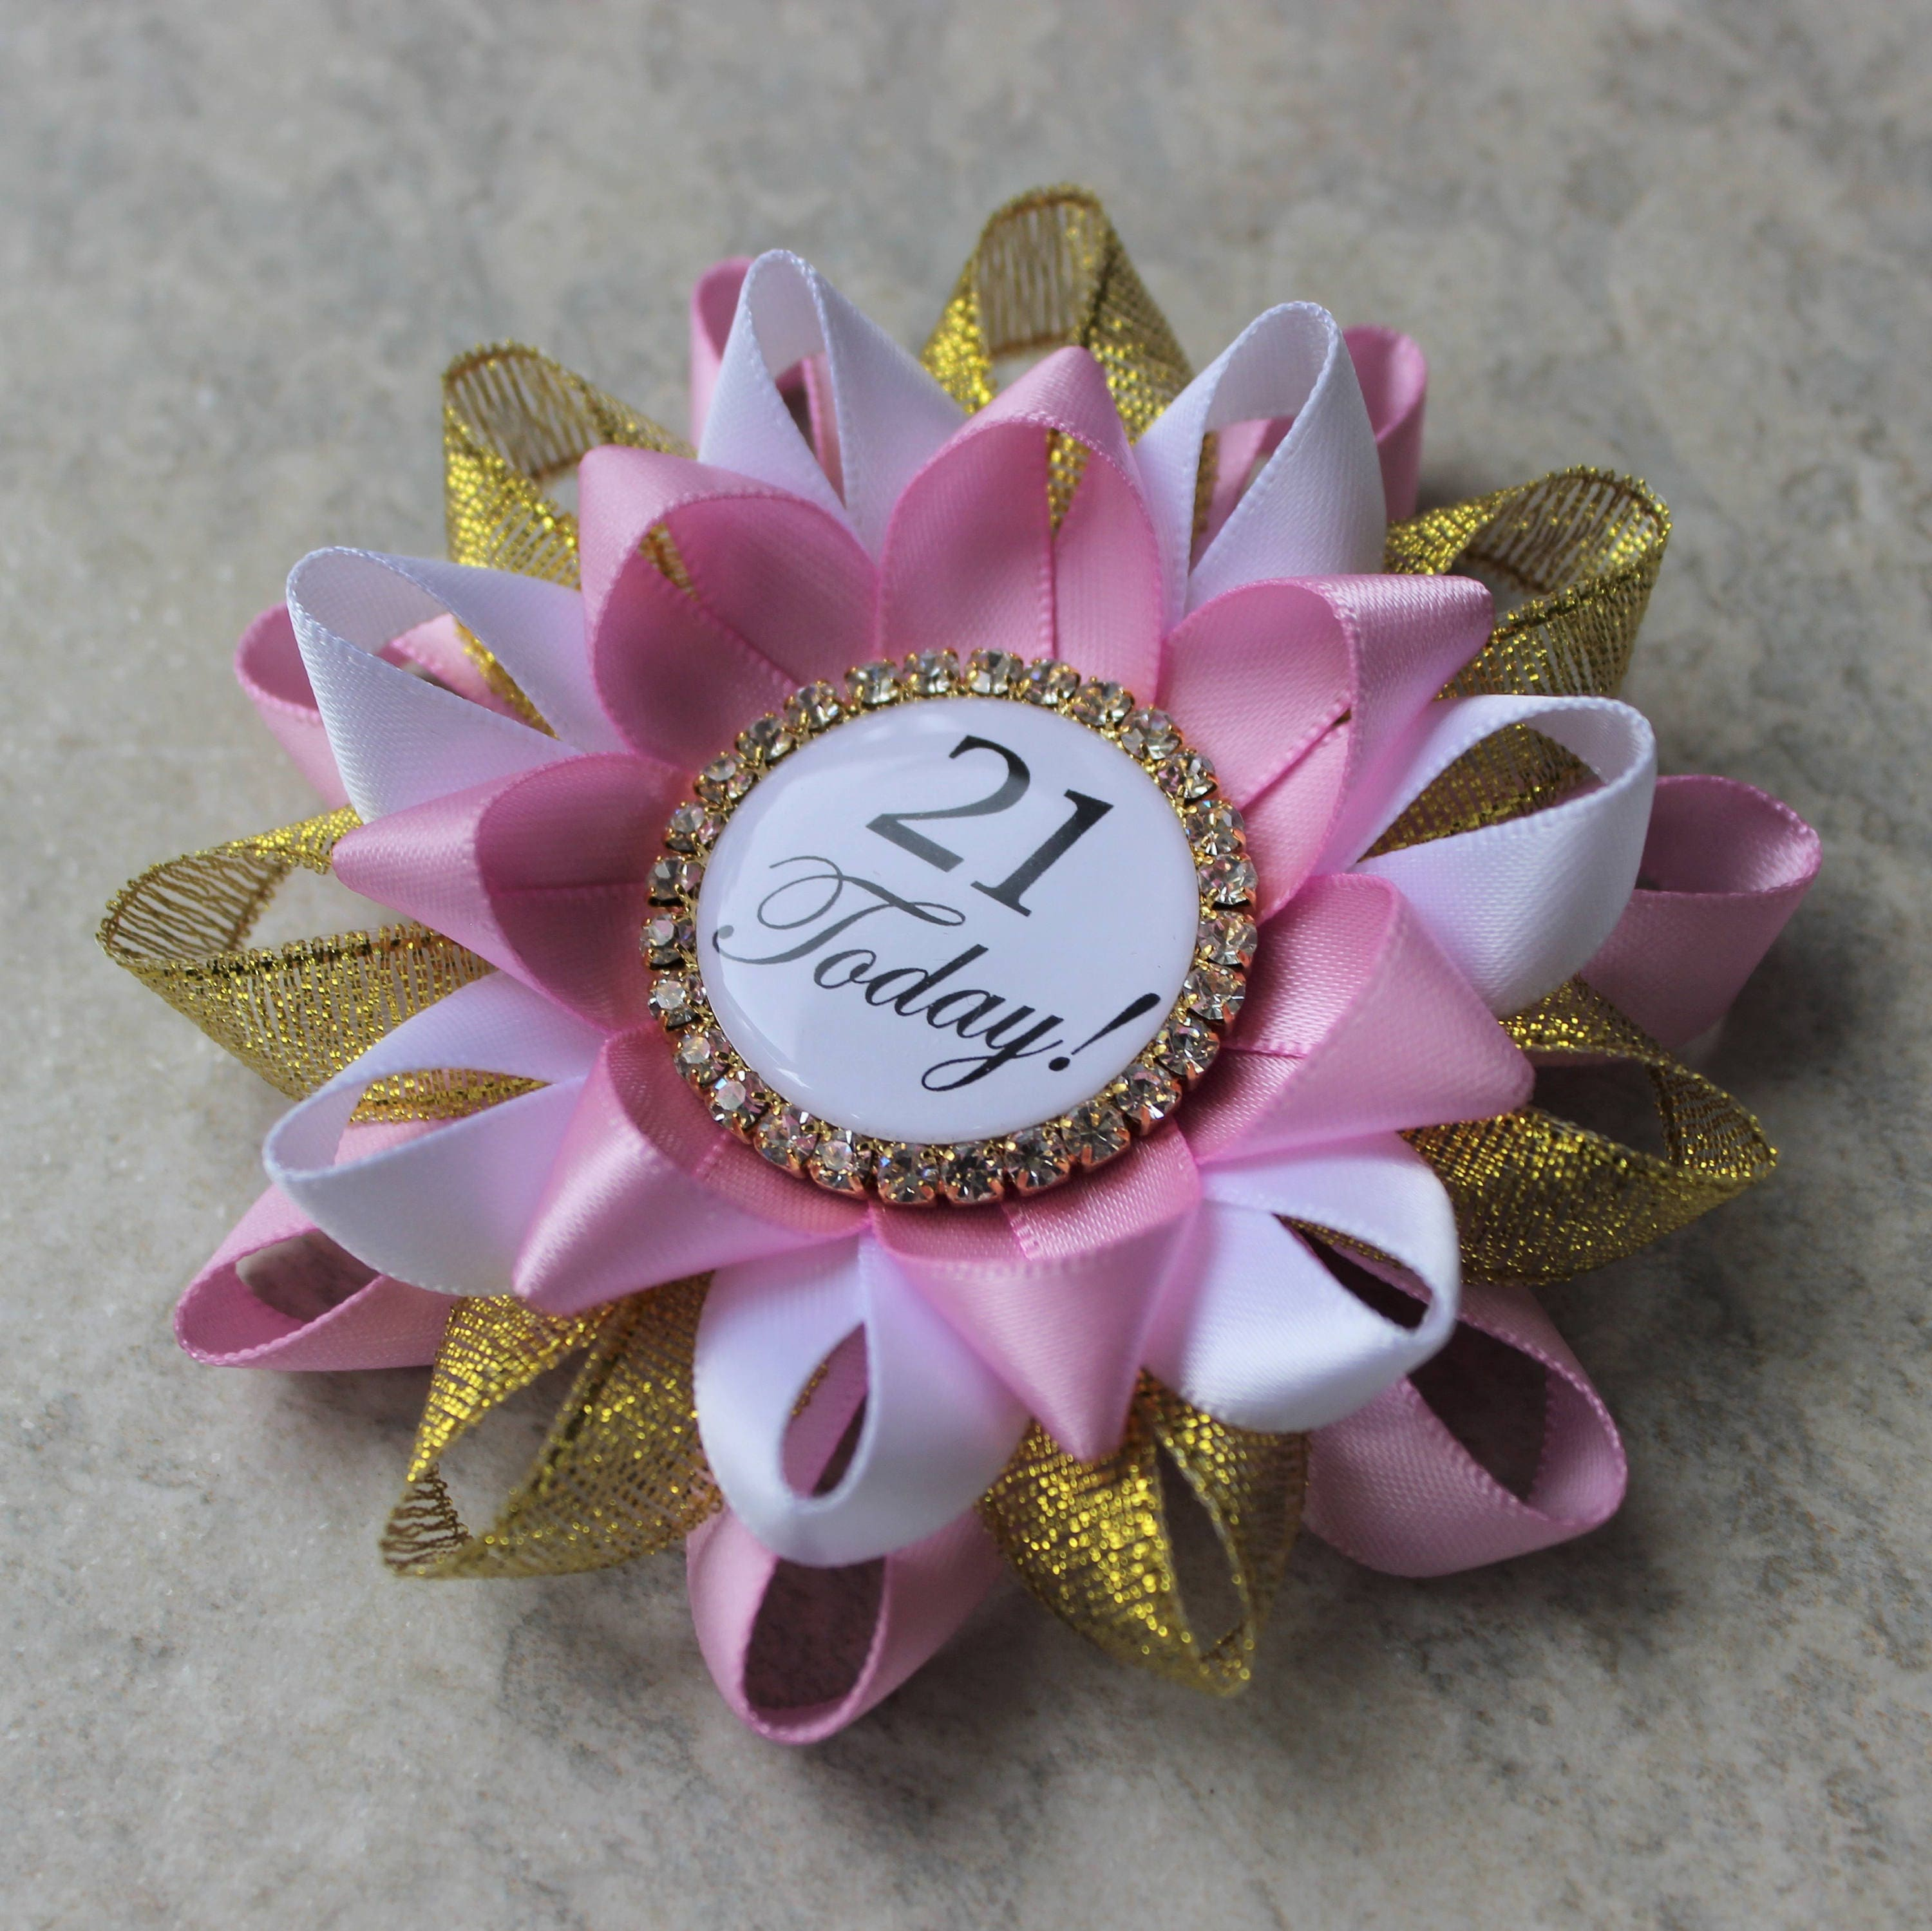 21st Birthday Pin Party Decorations Gift For Her Ideas Twenty First Bubblegum Gold White